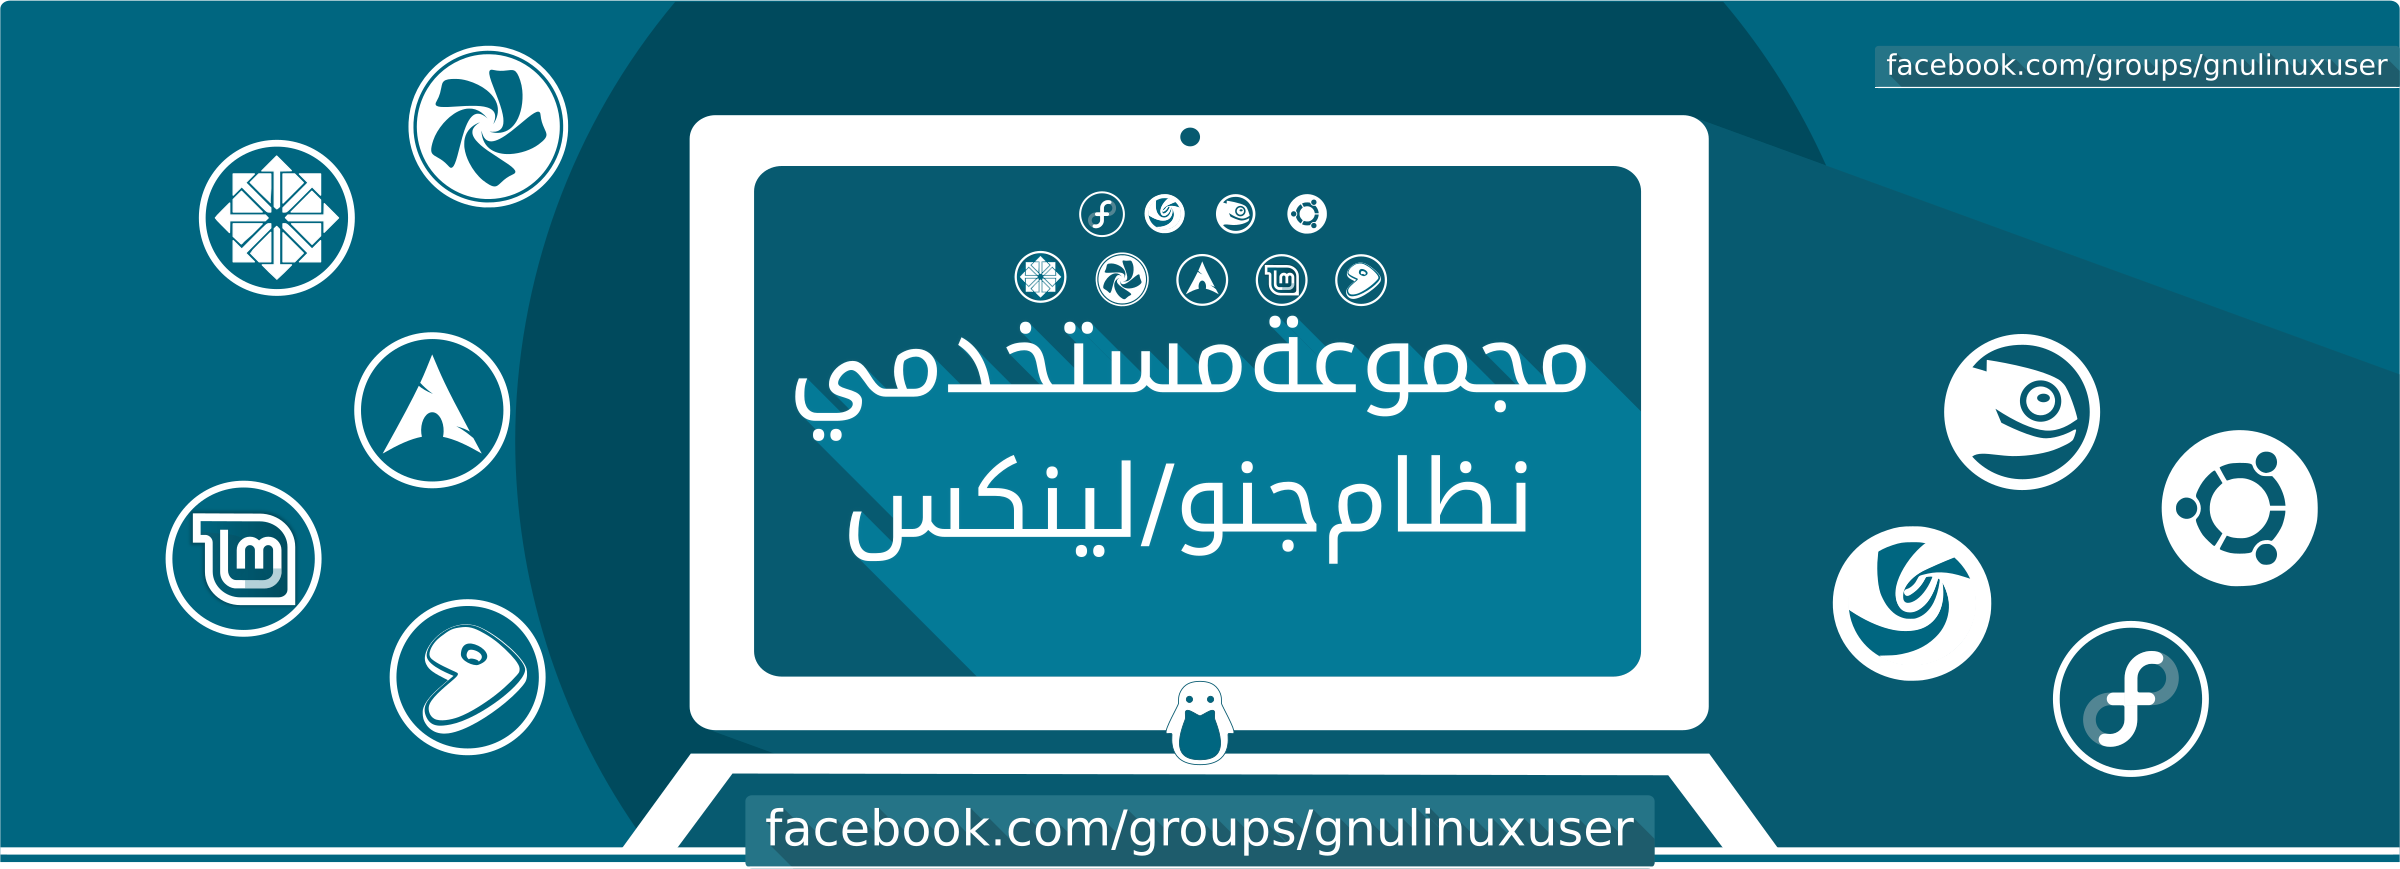 Arabian Linux group  by QMC.media